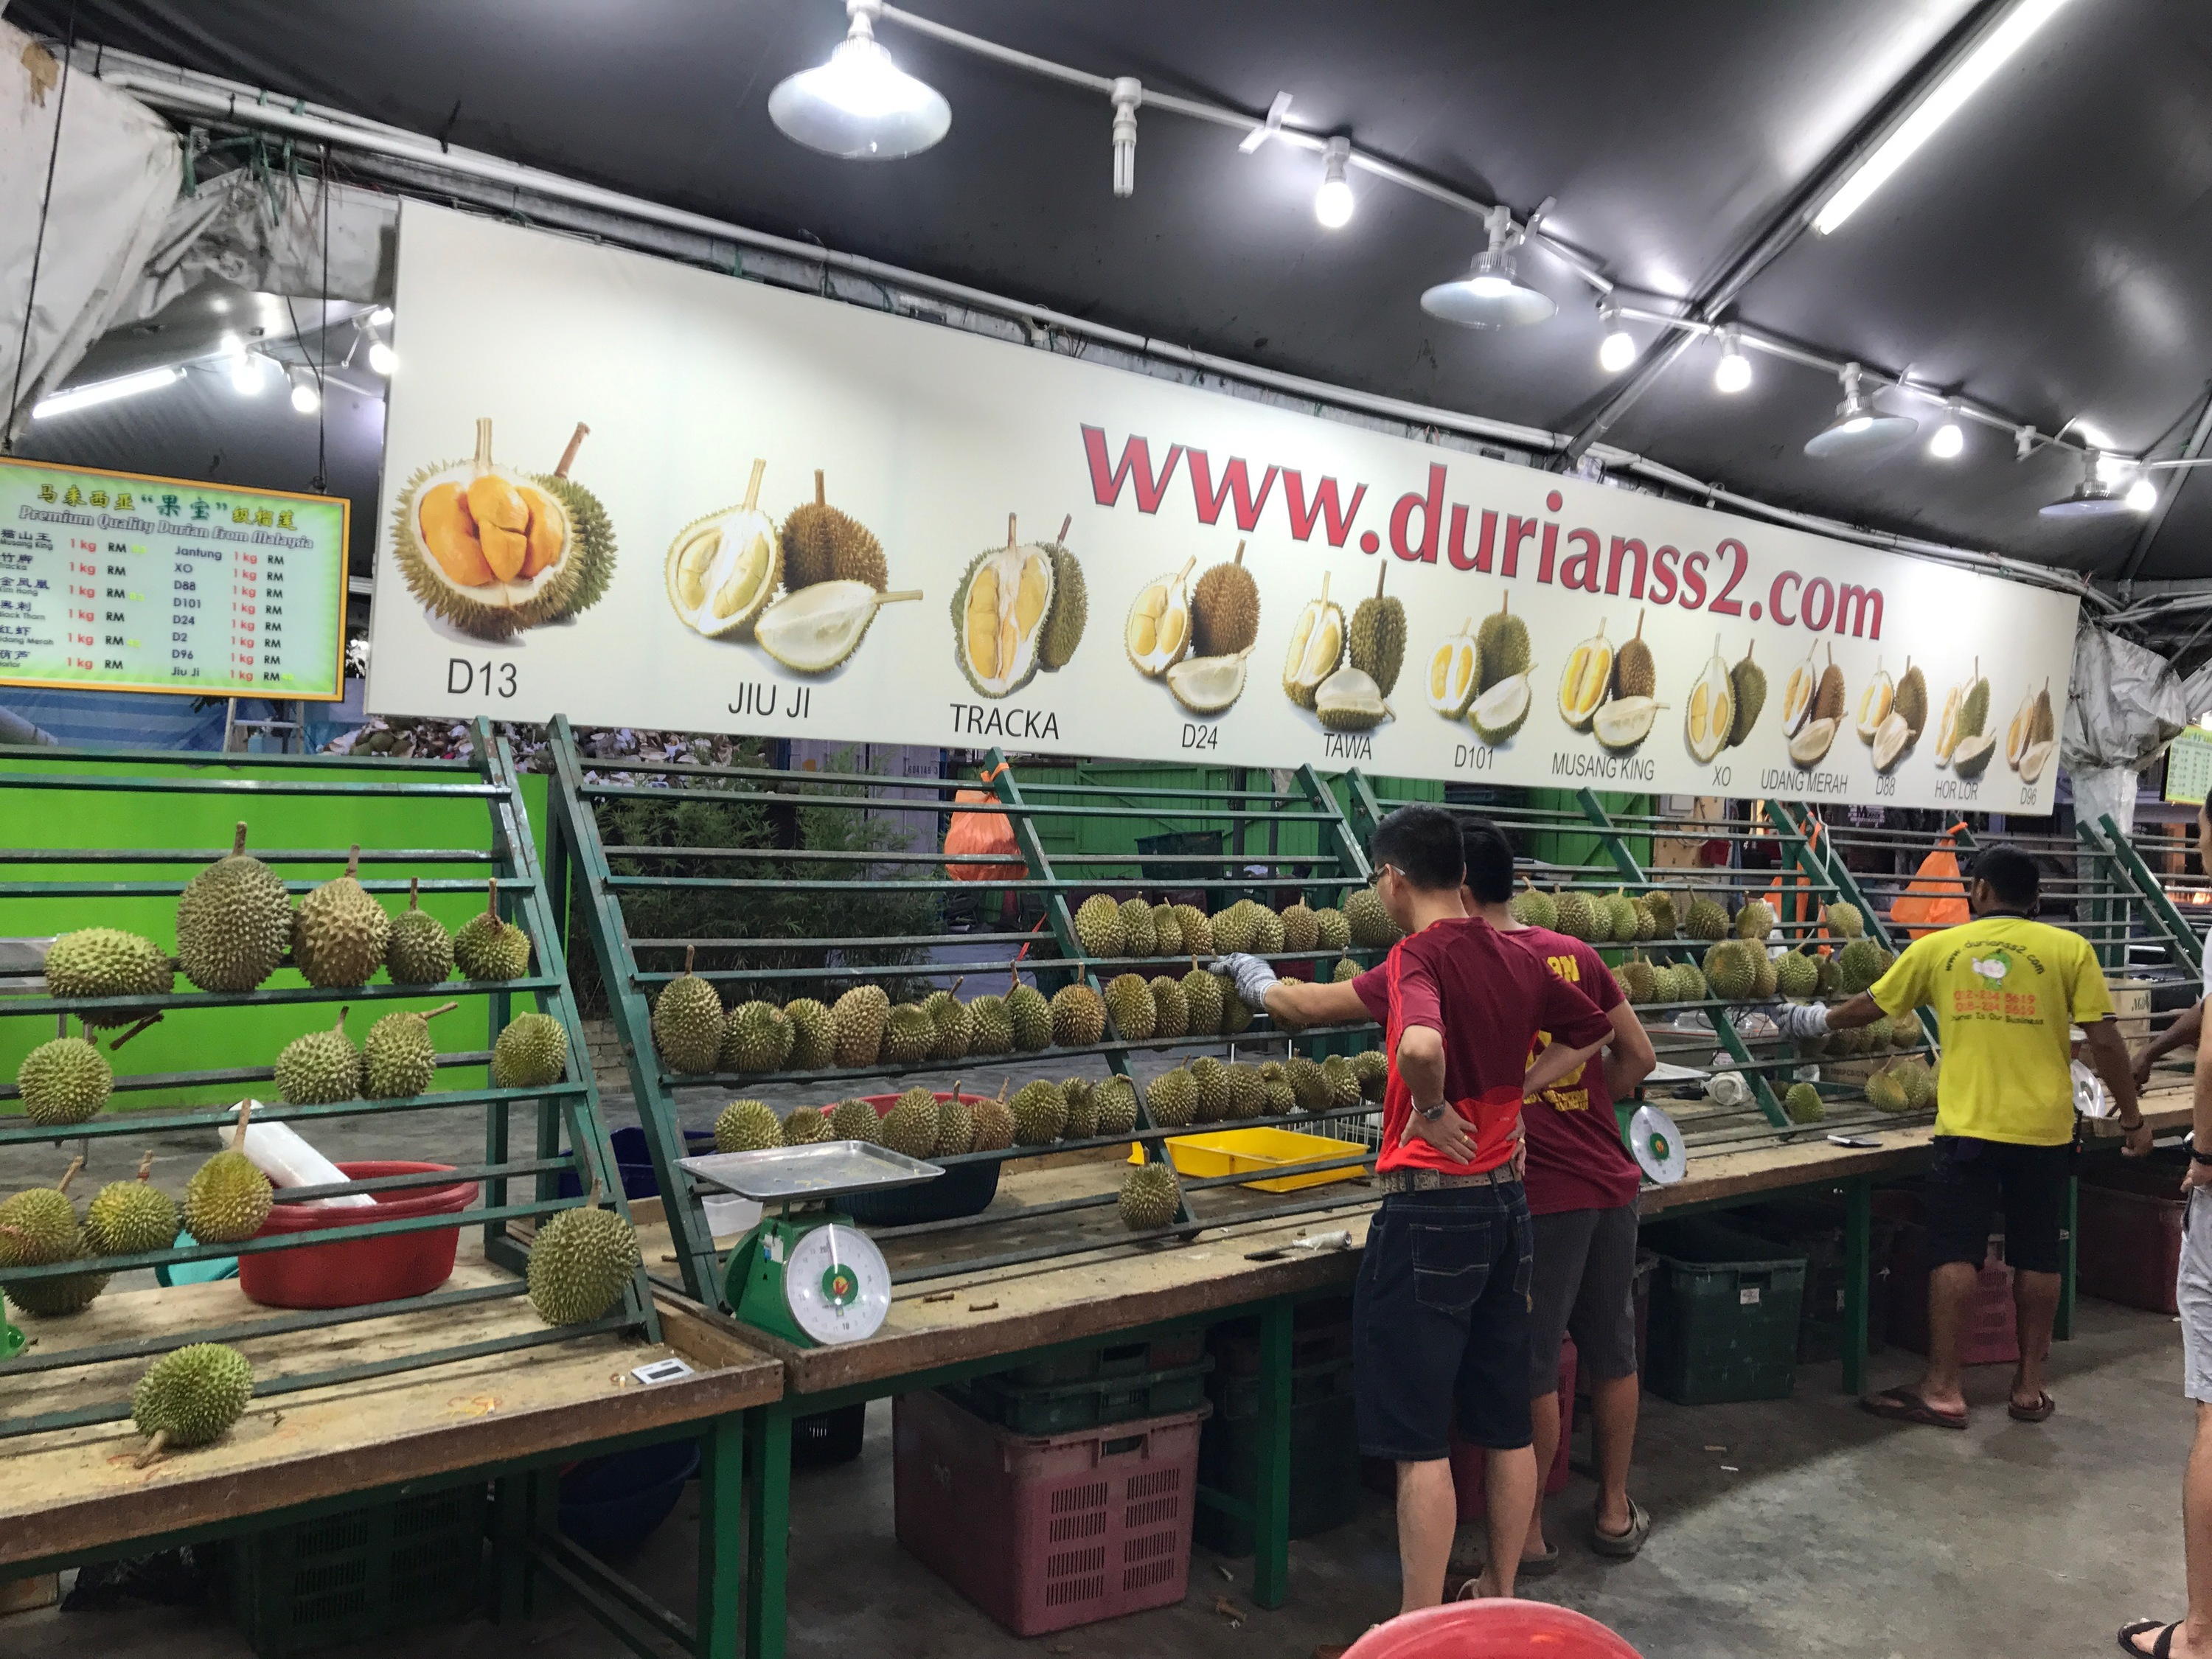 Durian SS2